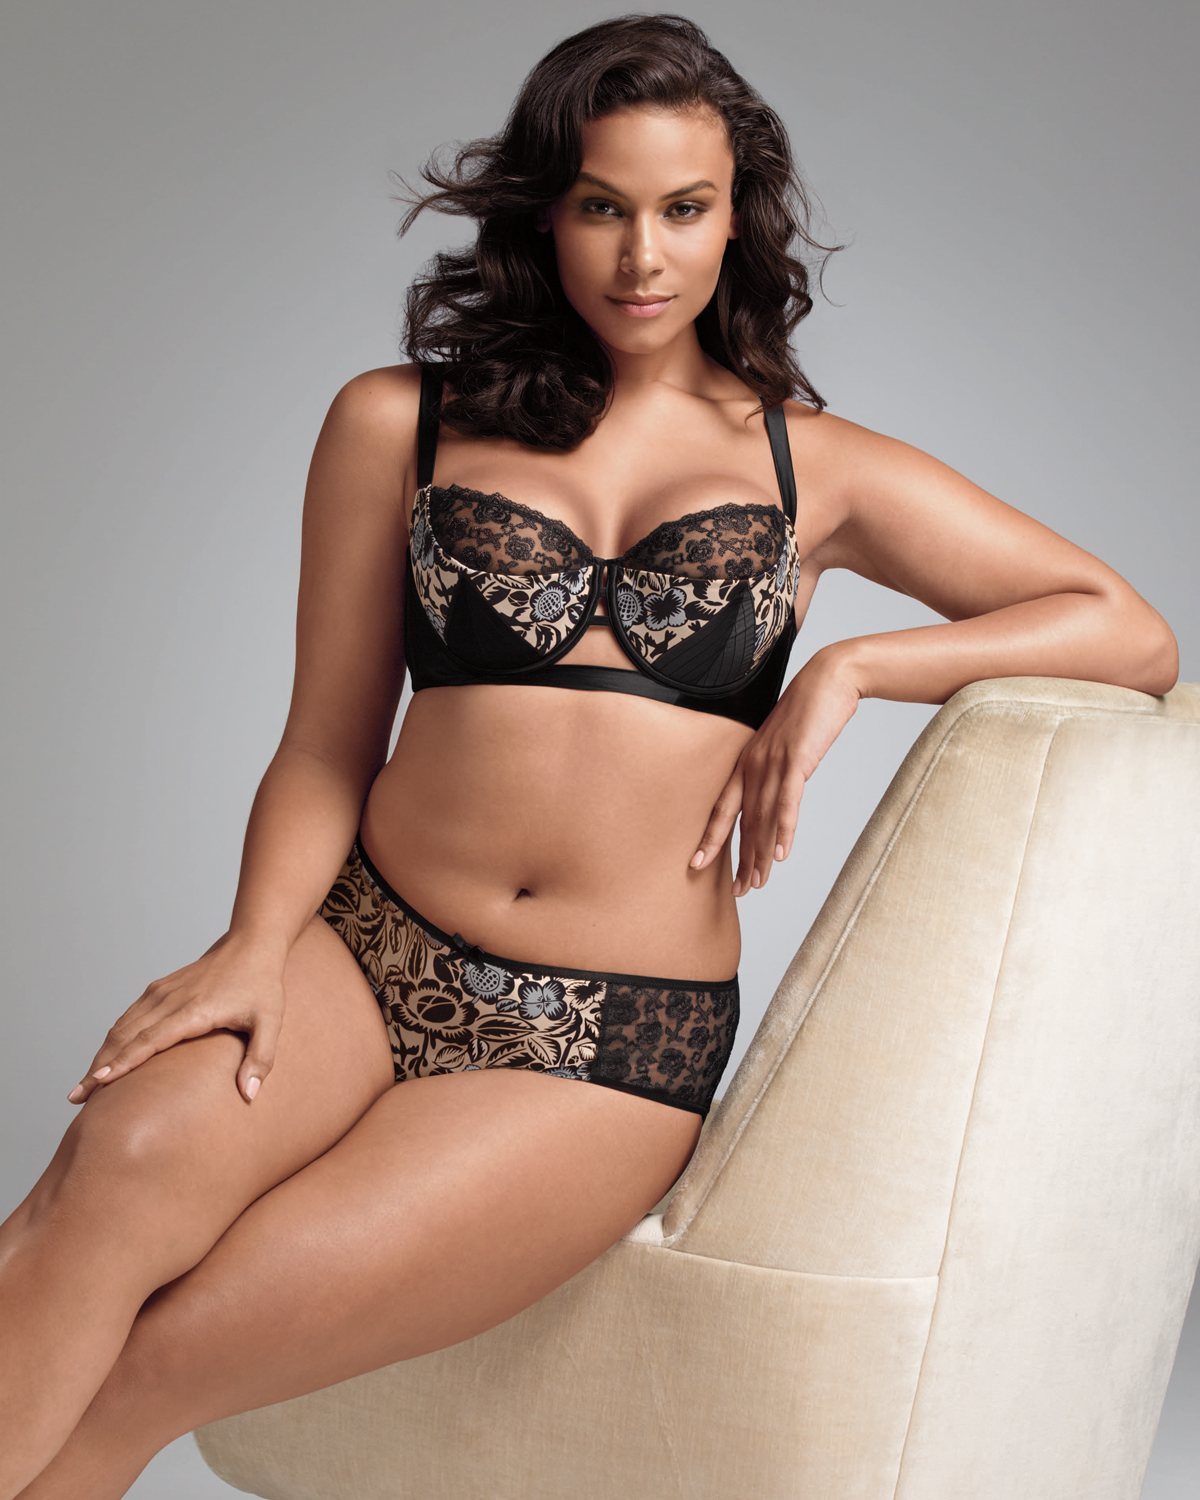 Sexy Plus Size Lingerie and Intimate Apparel. Our sexy plus size lingerie is flattering, pretty and always keeps you front and center. The assortment of plus size sexy lingerie is equal parts flirty and fun, so you can always find the fit that sparks your desire.